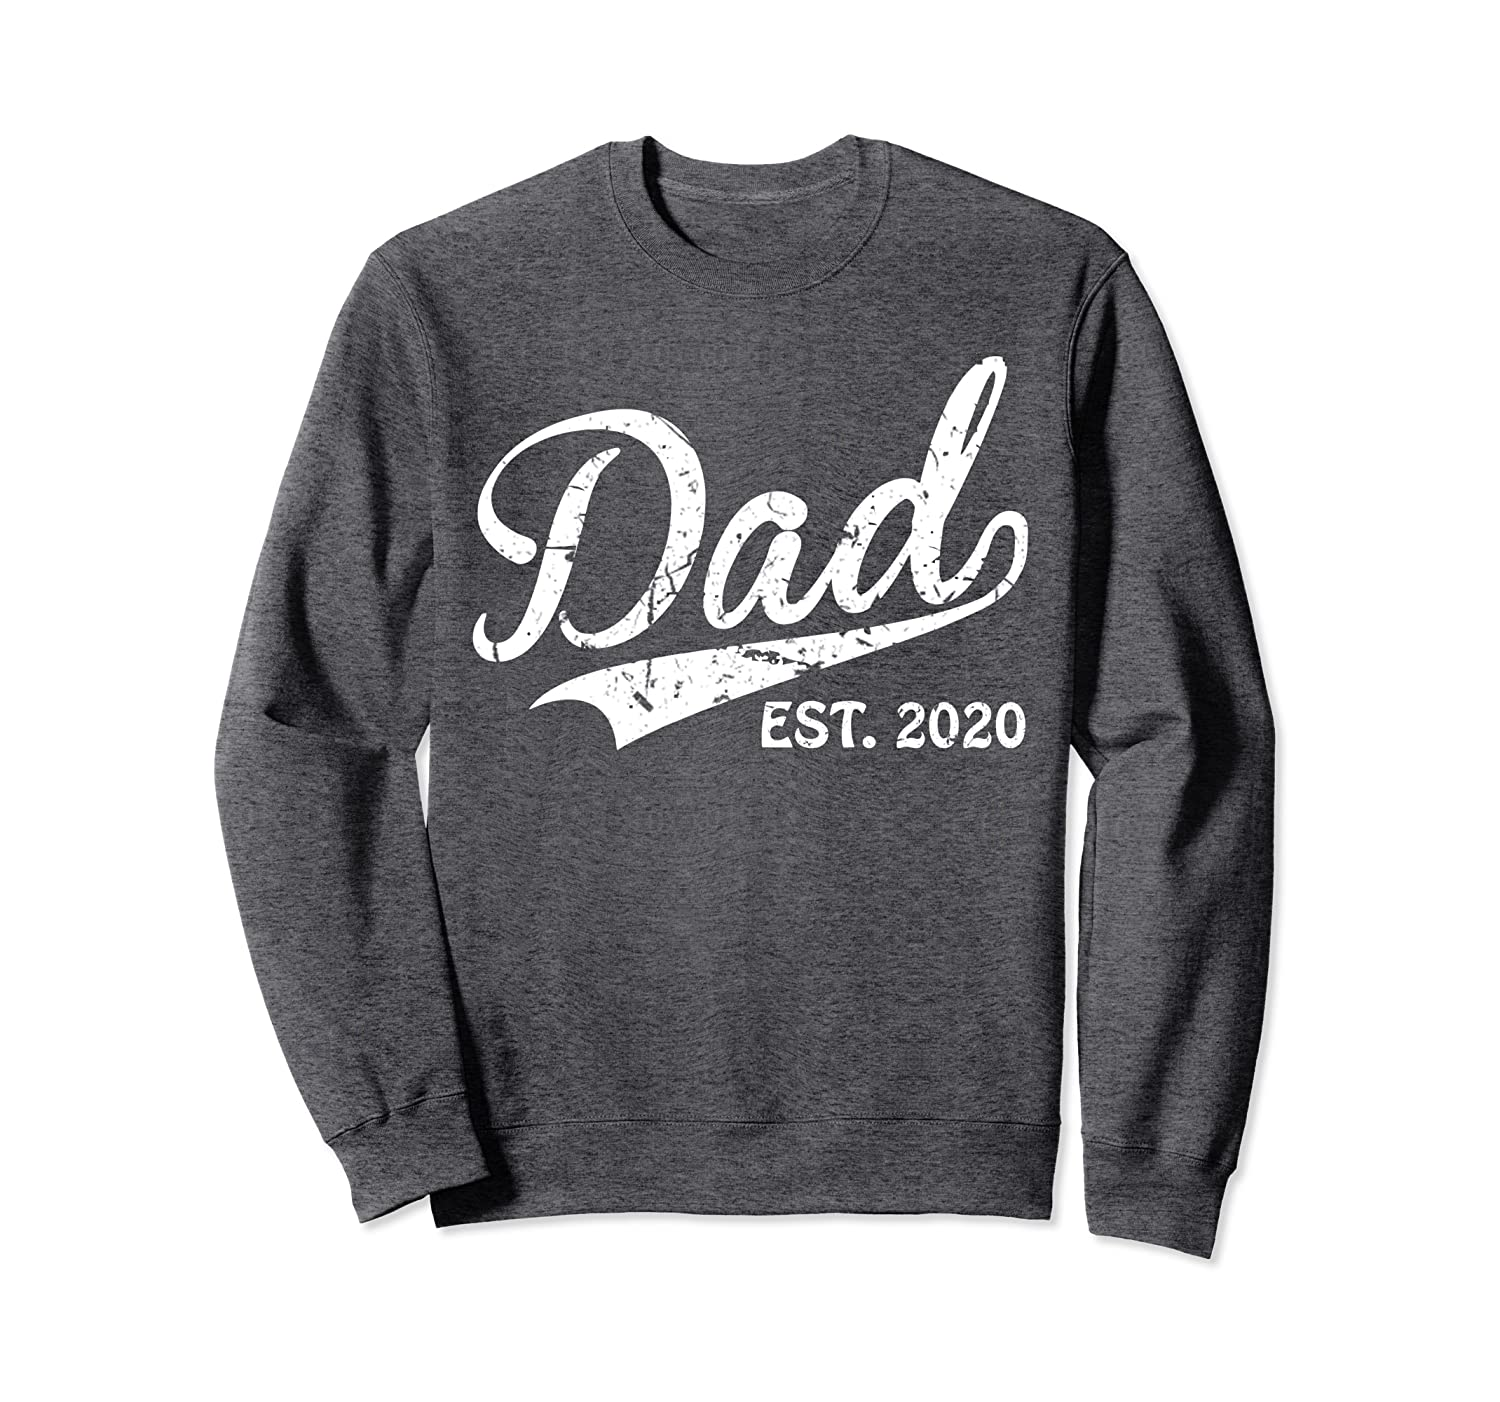 Best Fathers Day Gifts 2020.Amazon Com Best Dad Est 2020 Vintage New Dad T Shirt